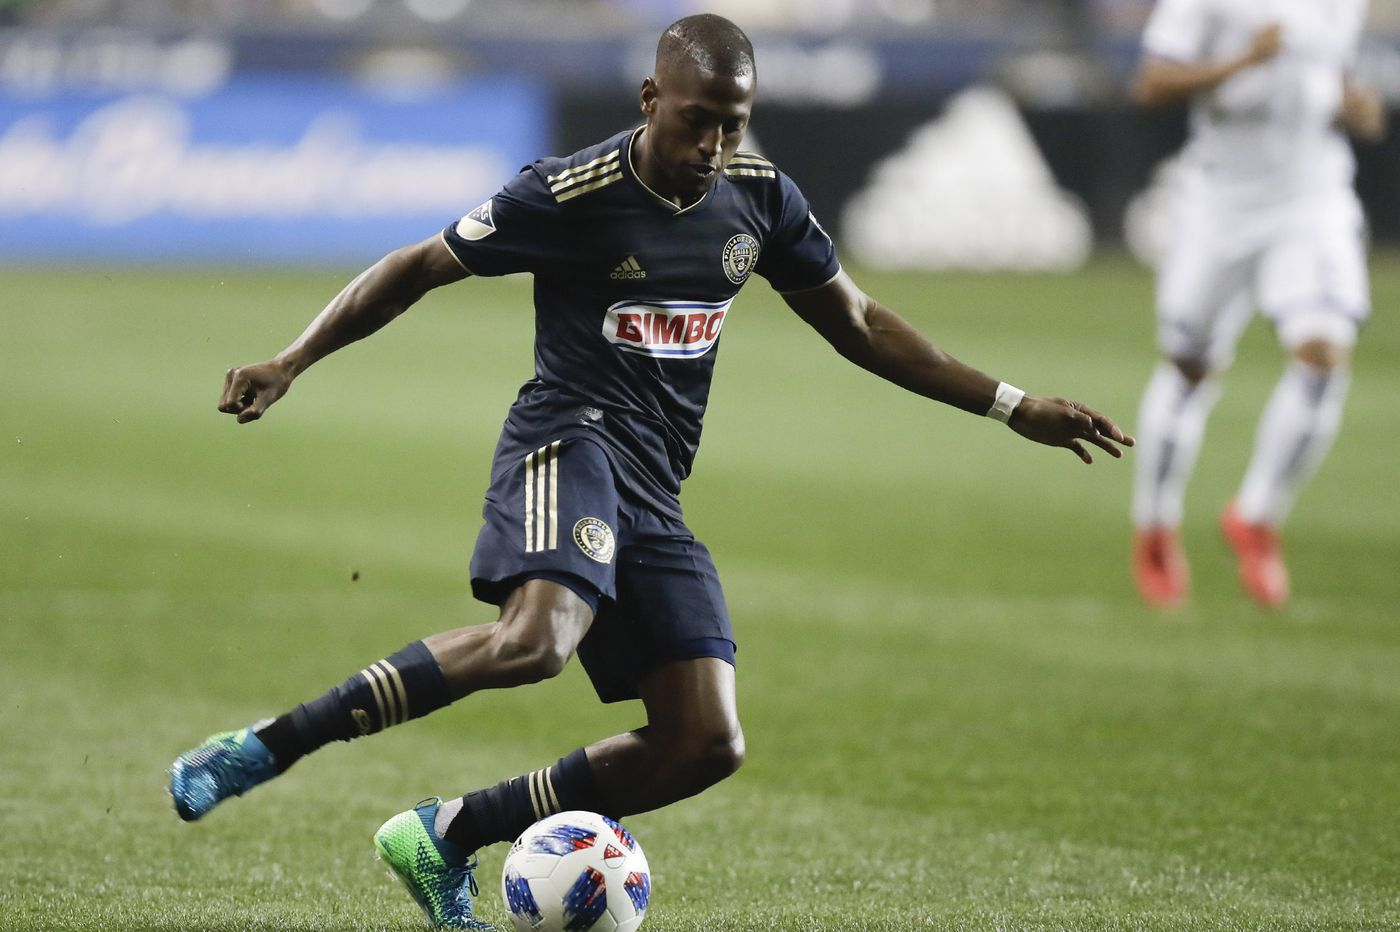 Union's Fafa Picault joins U.S. national team roster for games vs. Colombia, Peru